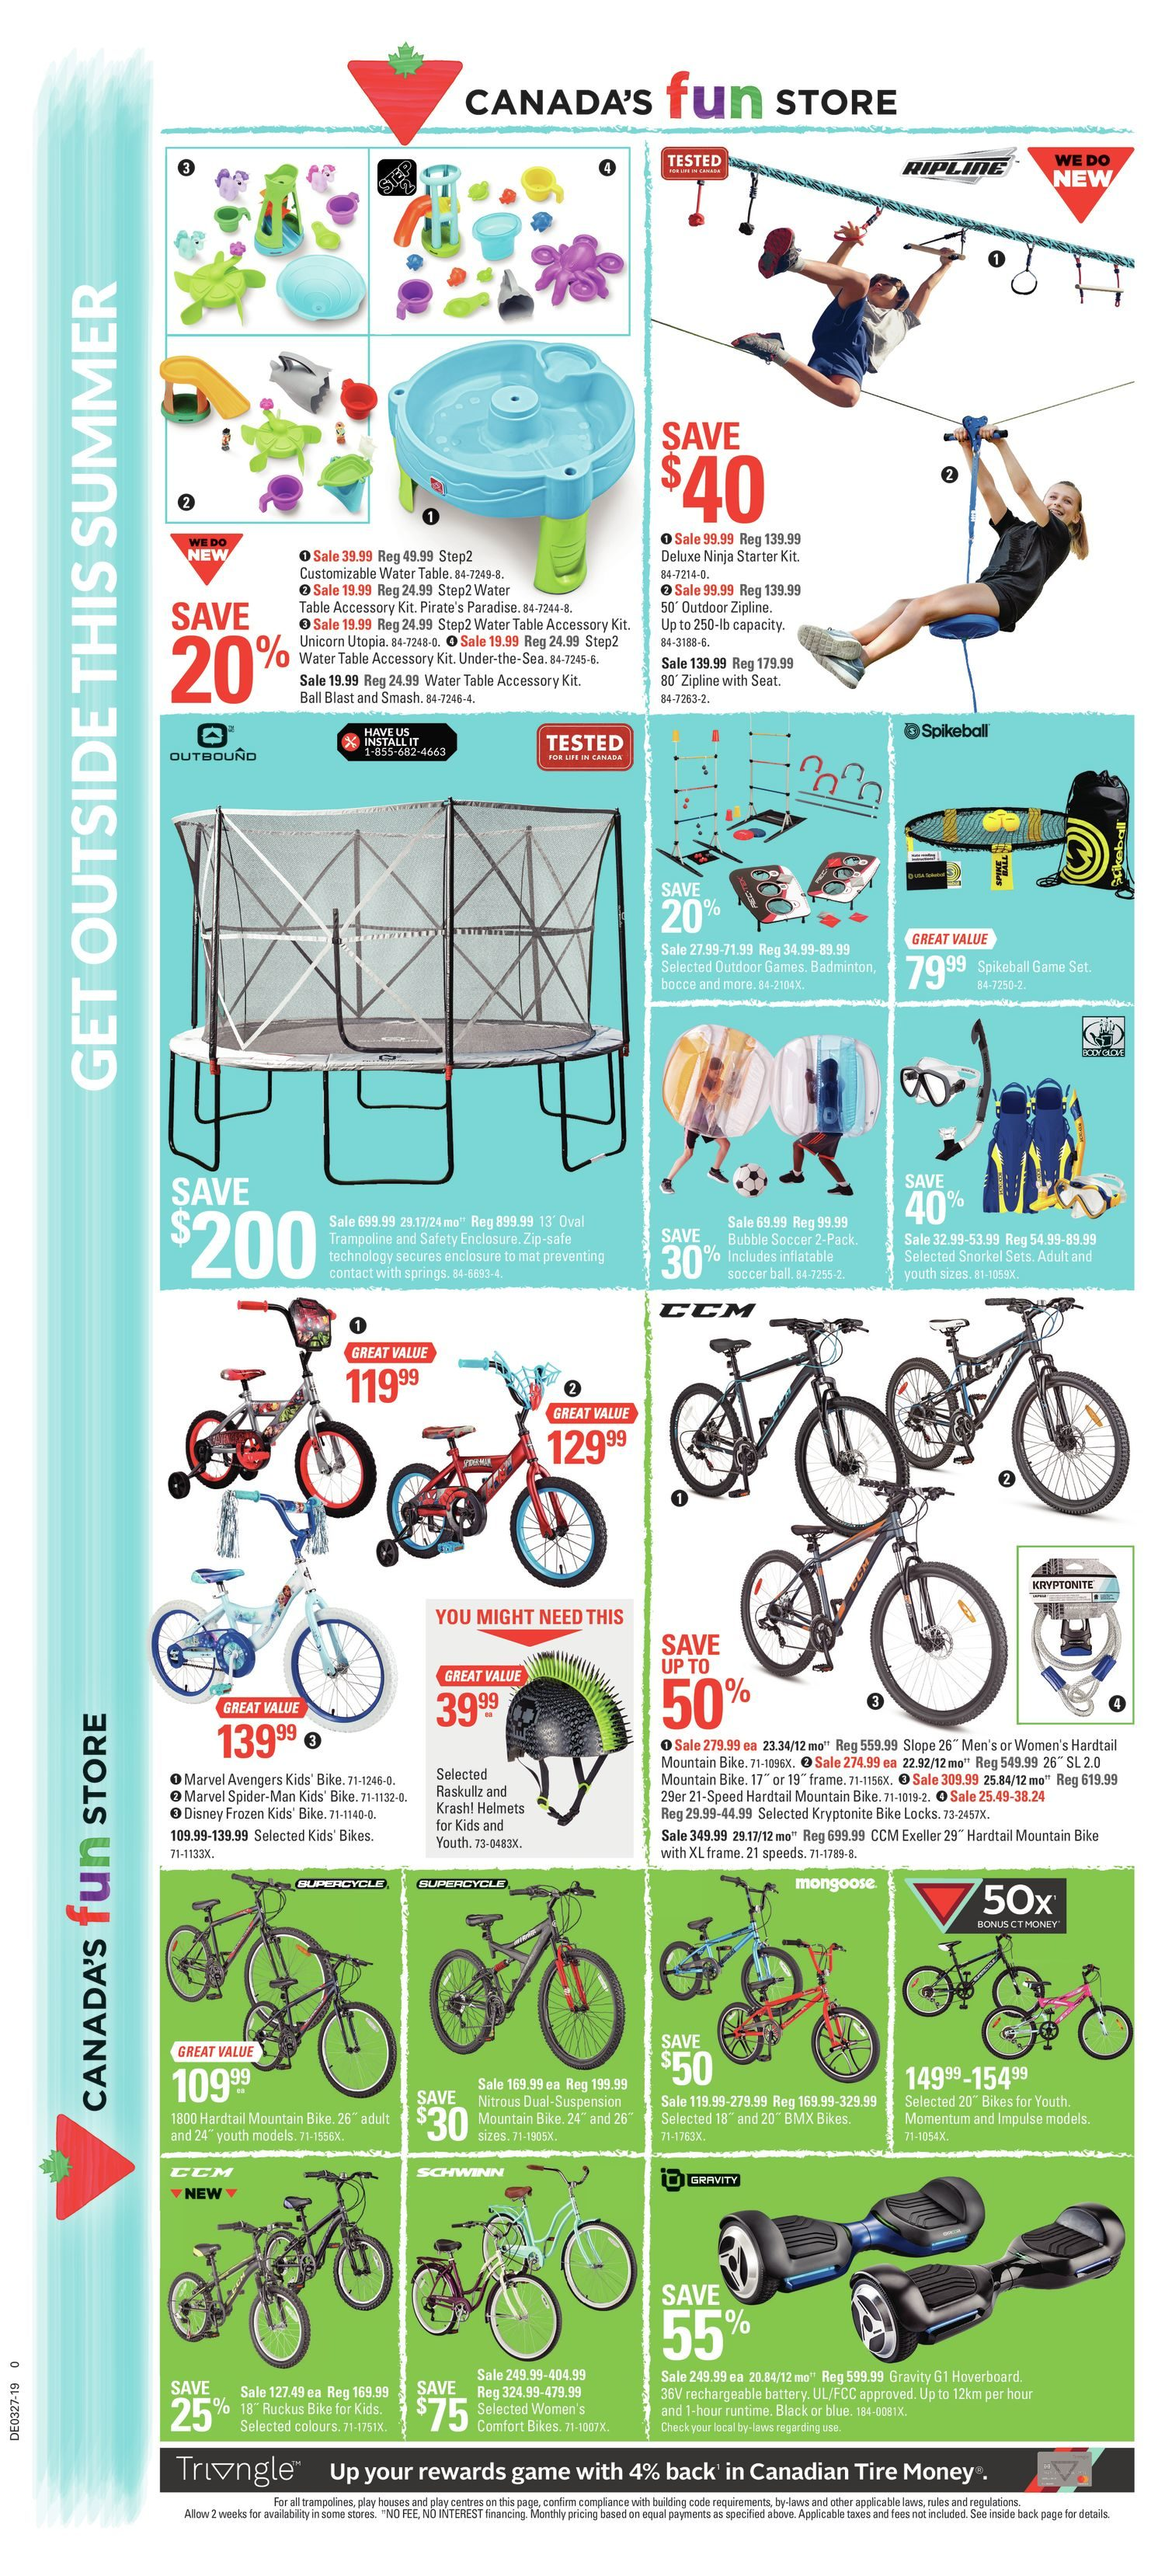 Canadian Tire Weekly Flyer - Weekly - Cheers Canada! - Jun